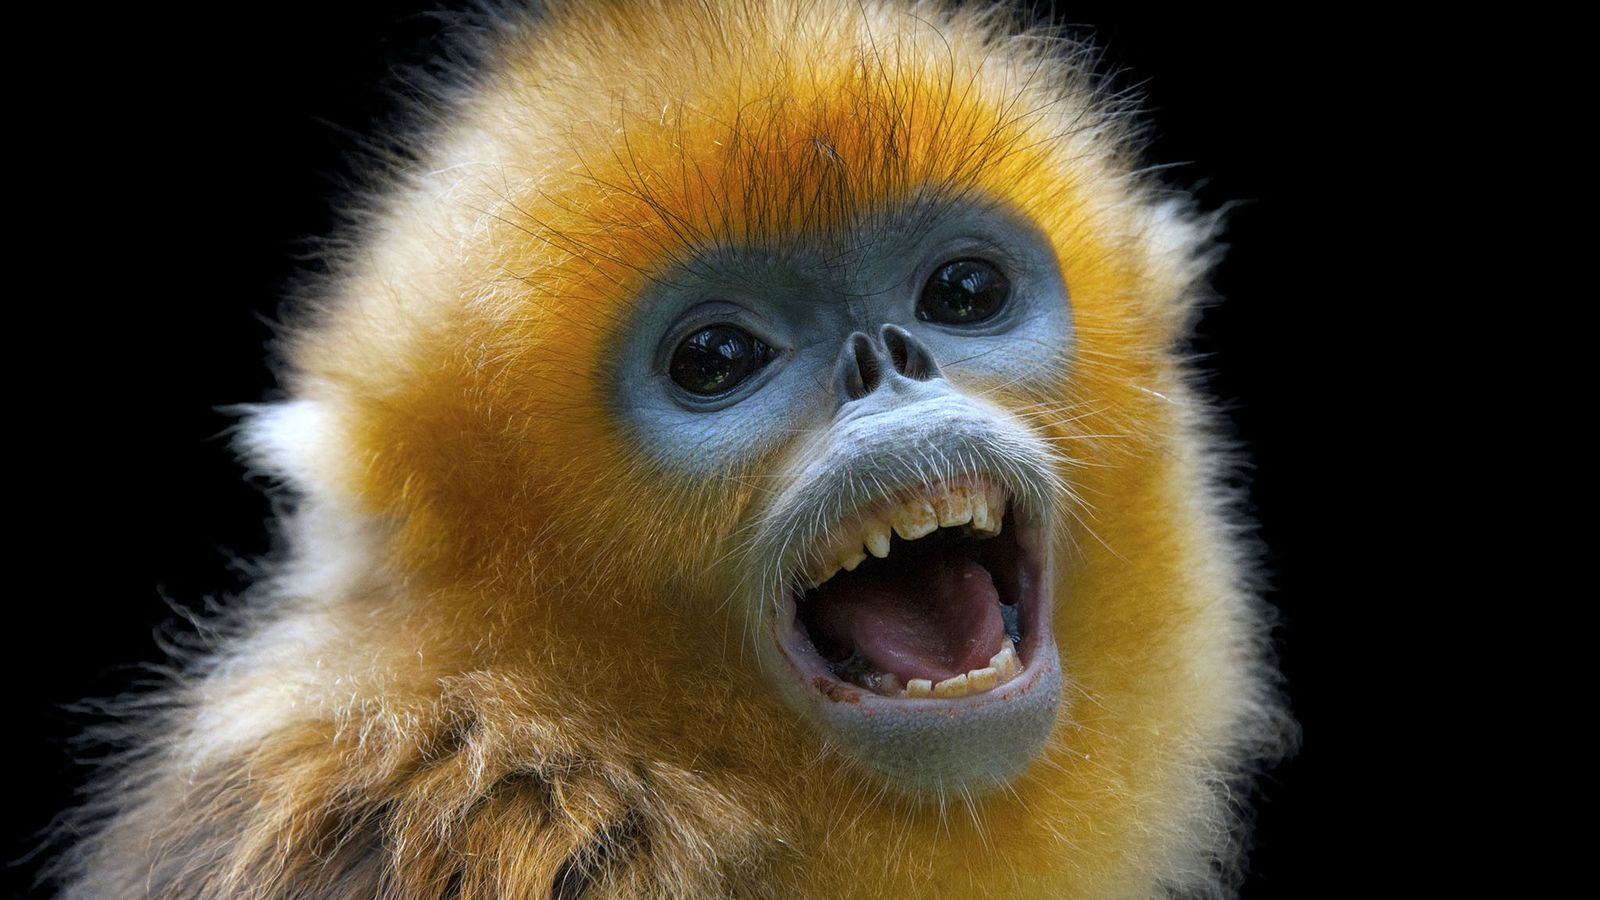 The luxurious pelt and distinctive face of the golden snub-nosed monkey grabbed the attention of ancient ...